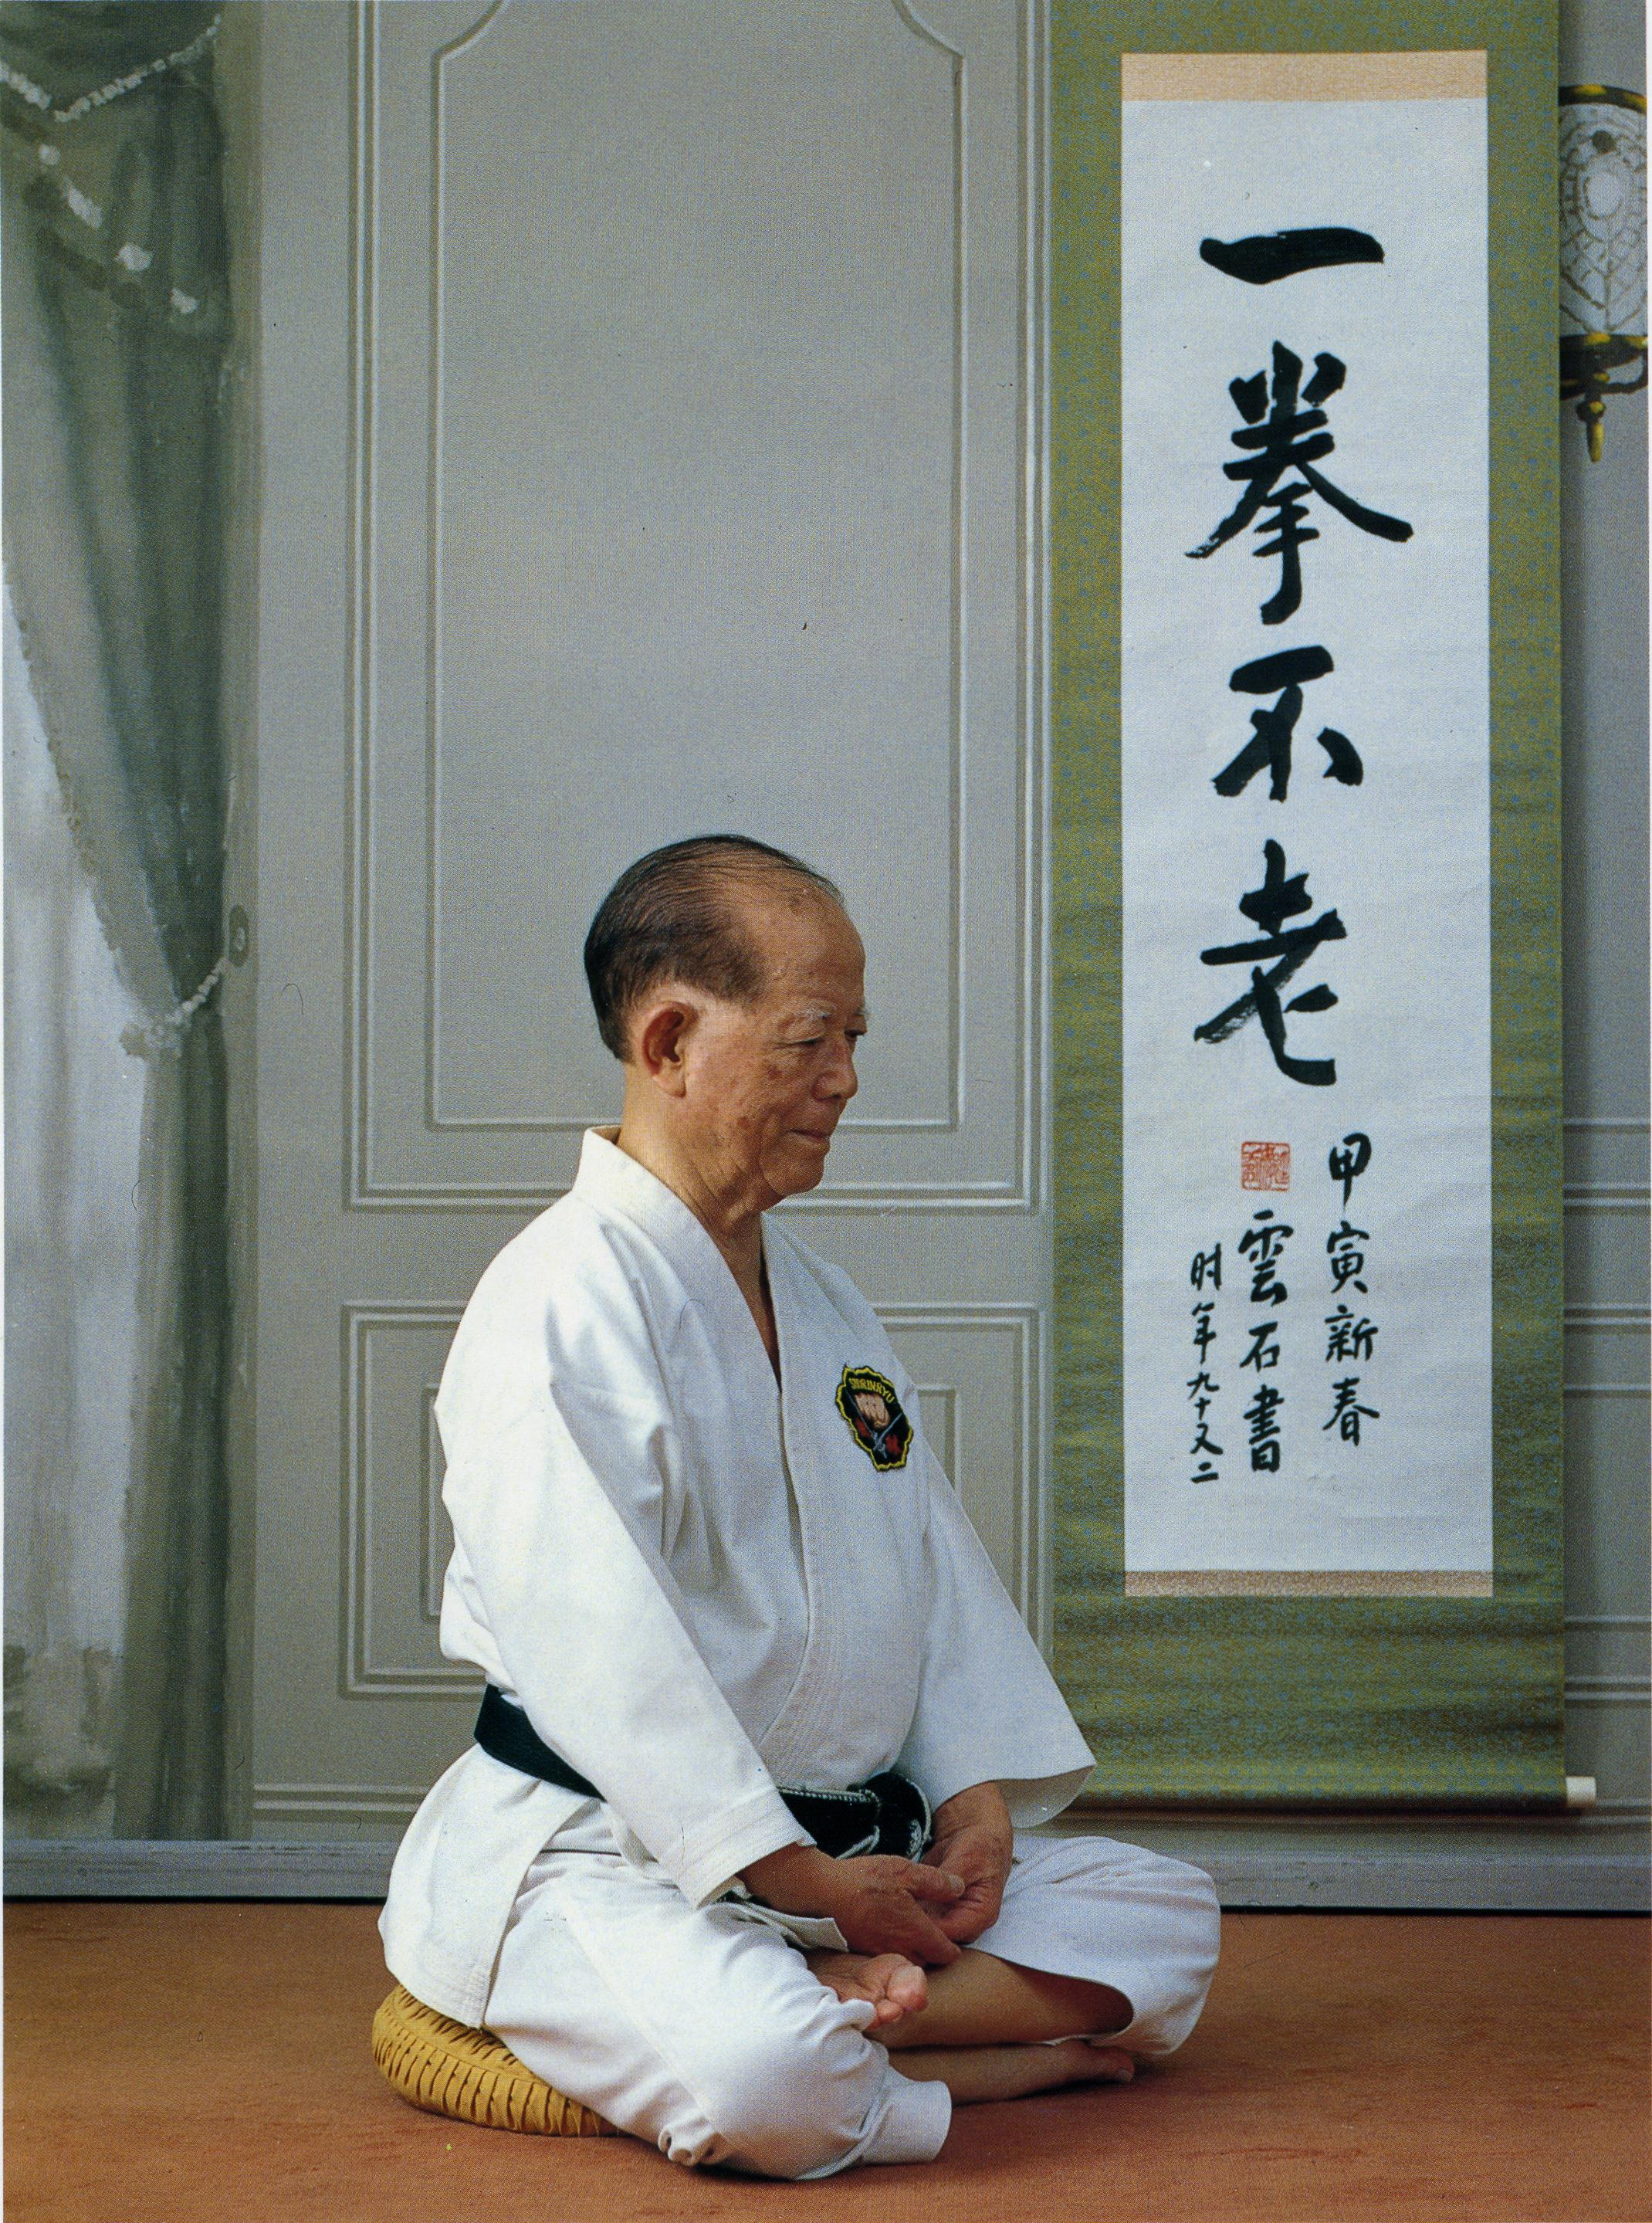 Hanshi in seated Zazen meditation